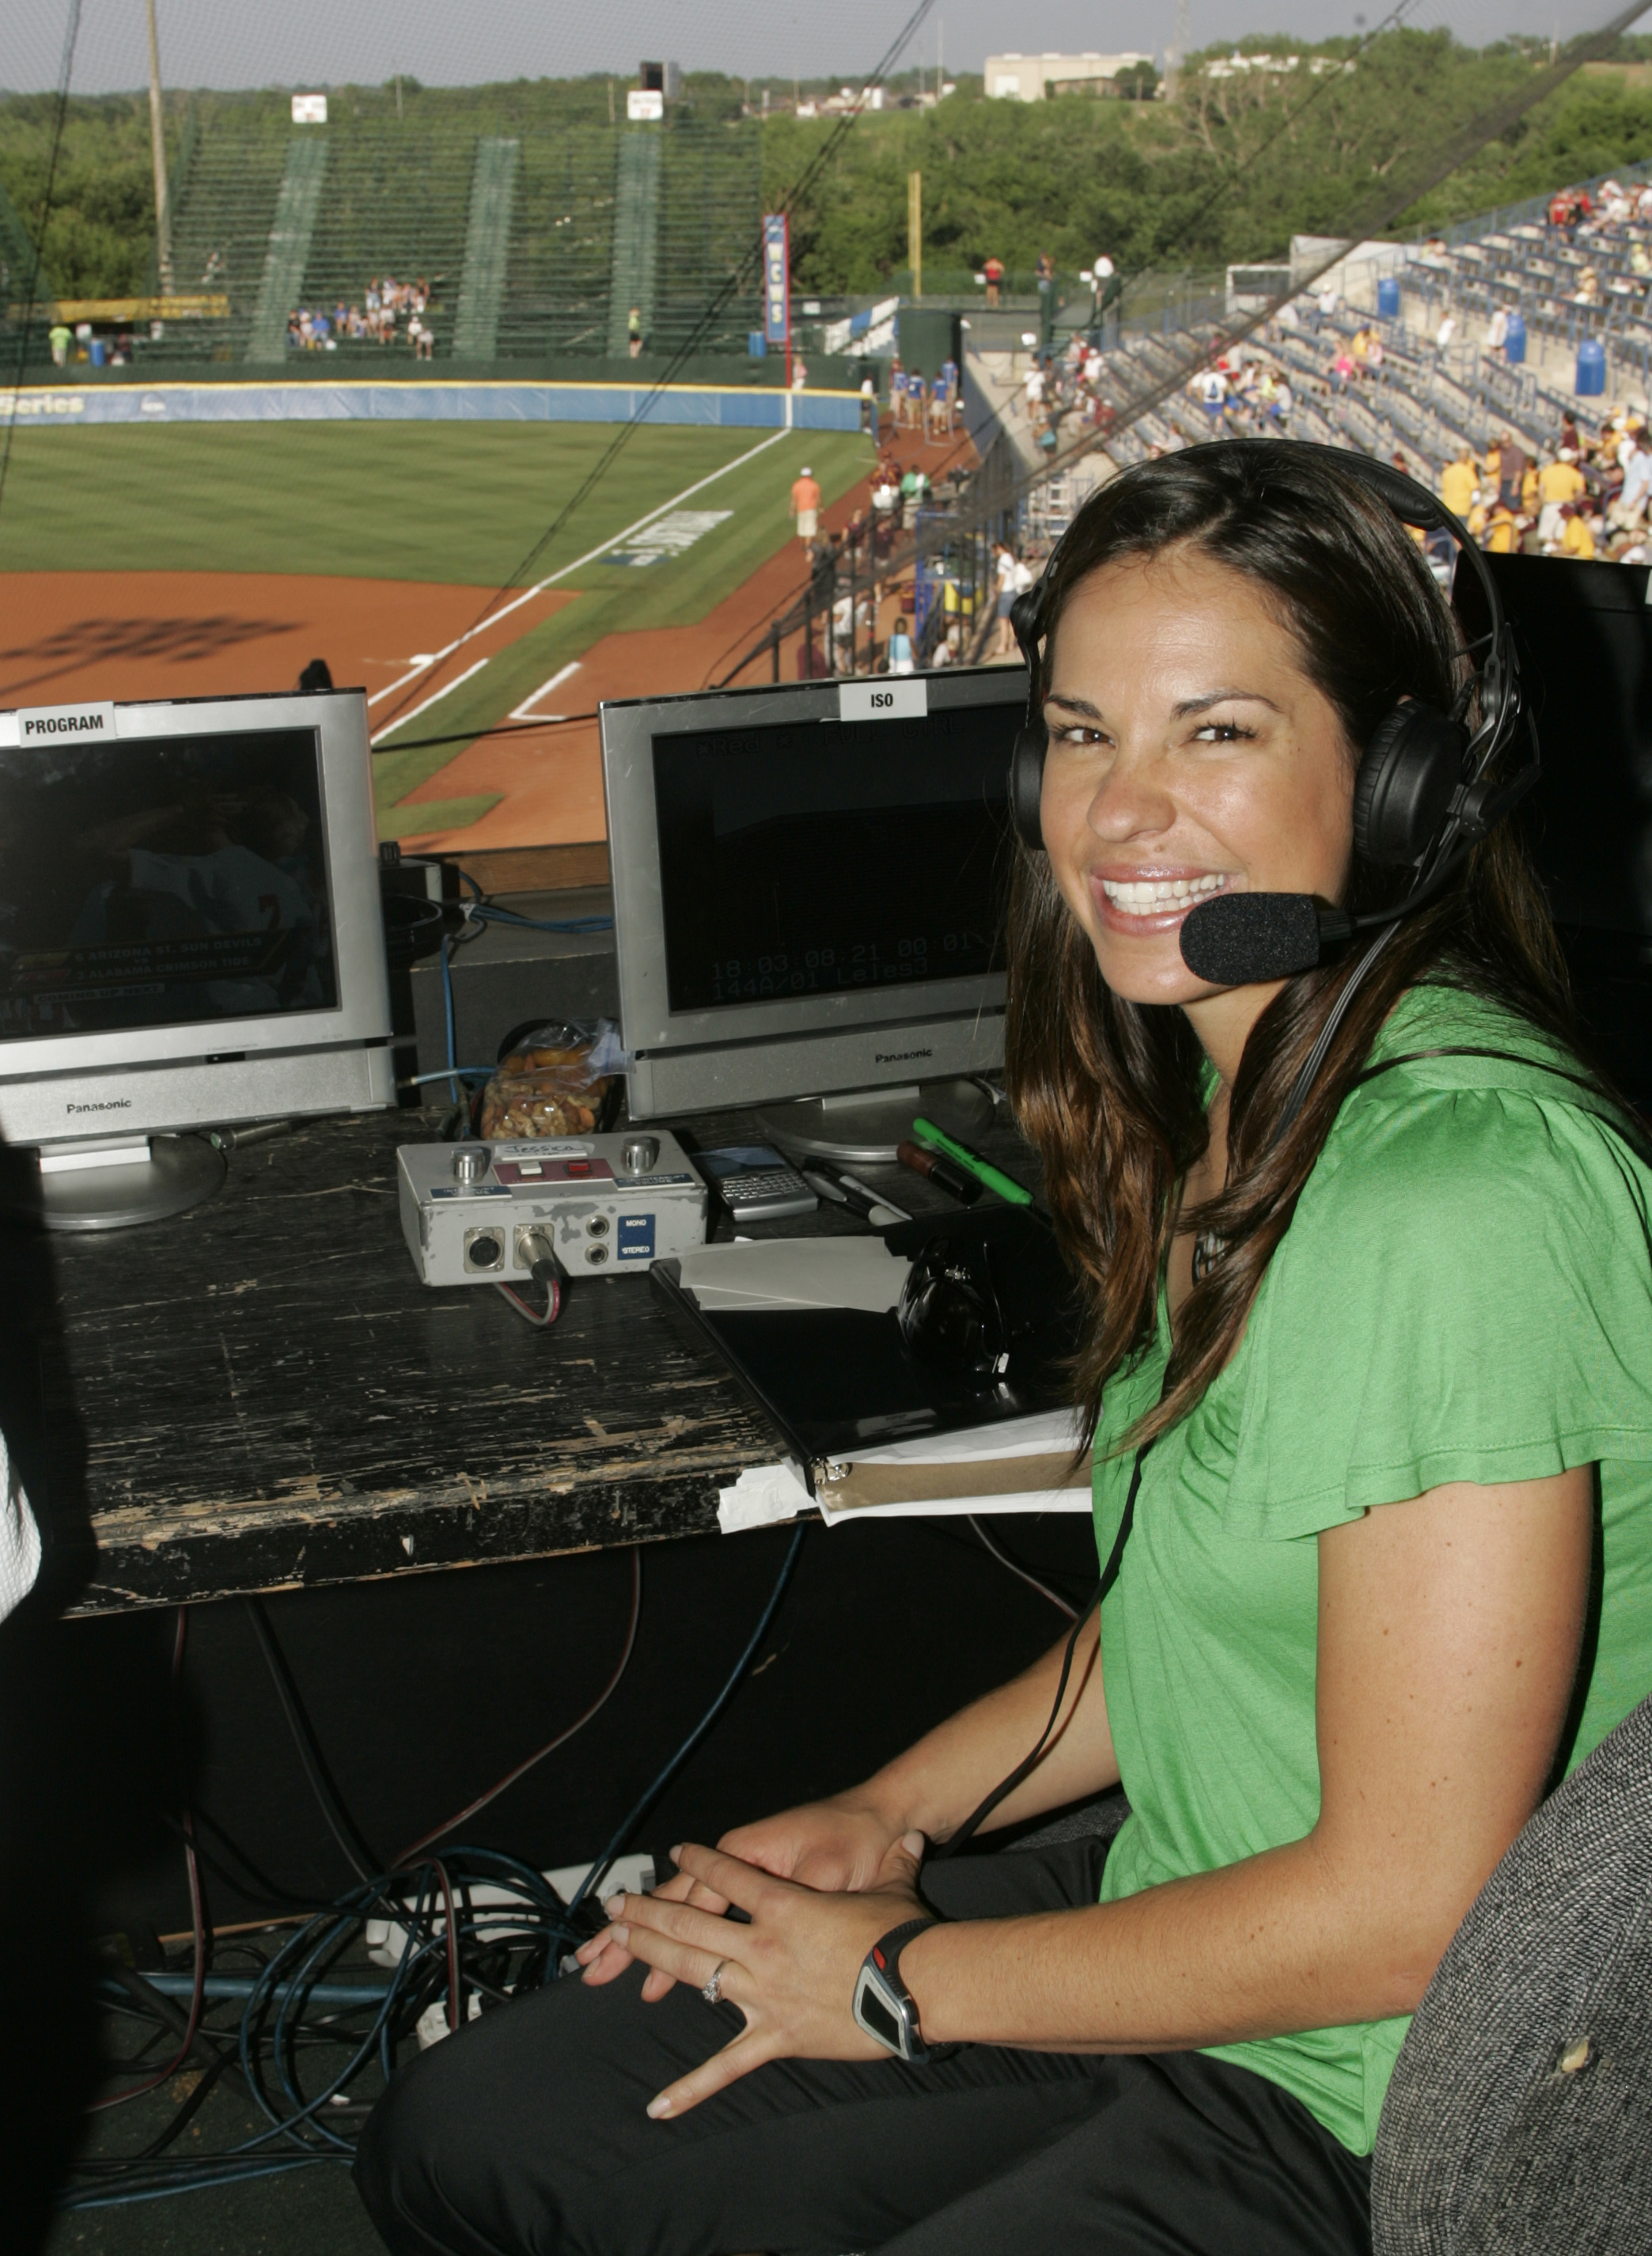 FILE - In this May 29, 2009 file photo, USA softball player Jessica Mendoza poses for a photo in the ESPN broadcast booth at the Women's College World Series in Oklahoma City.  Mendoza chatted up Kyle Schwarber, broke down pitcher's tendencies and dealt w